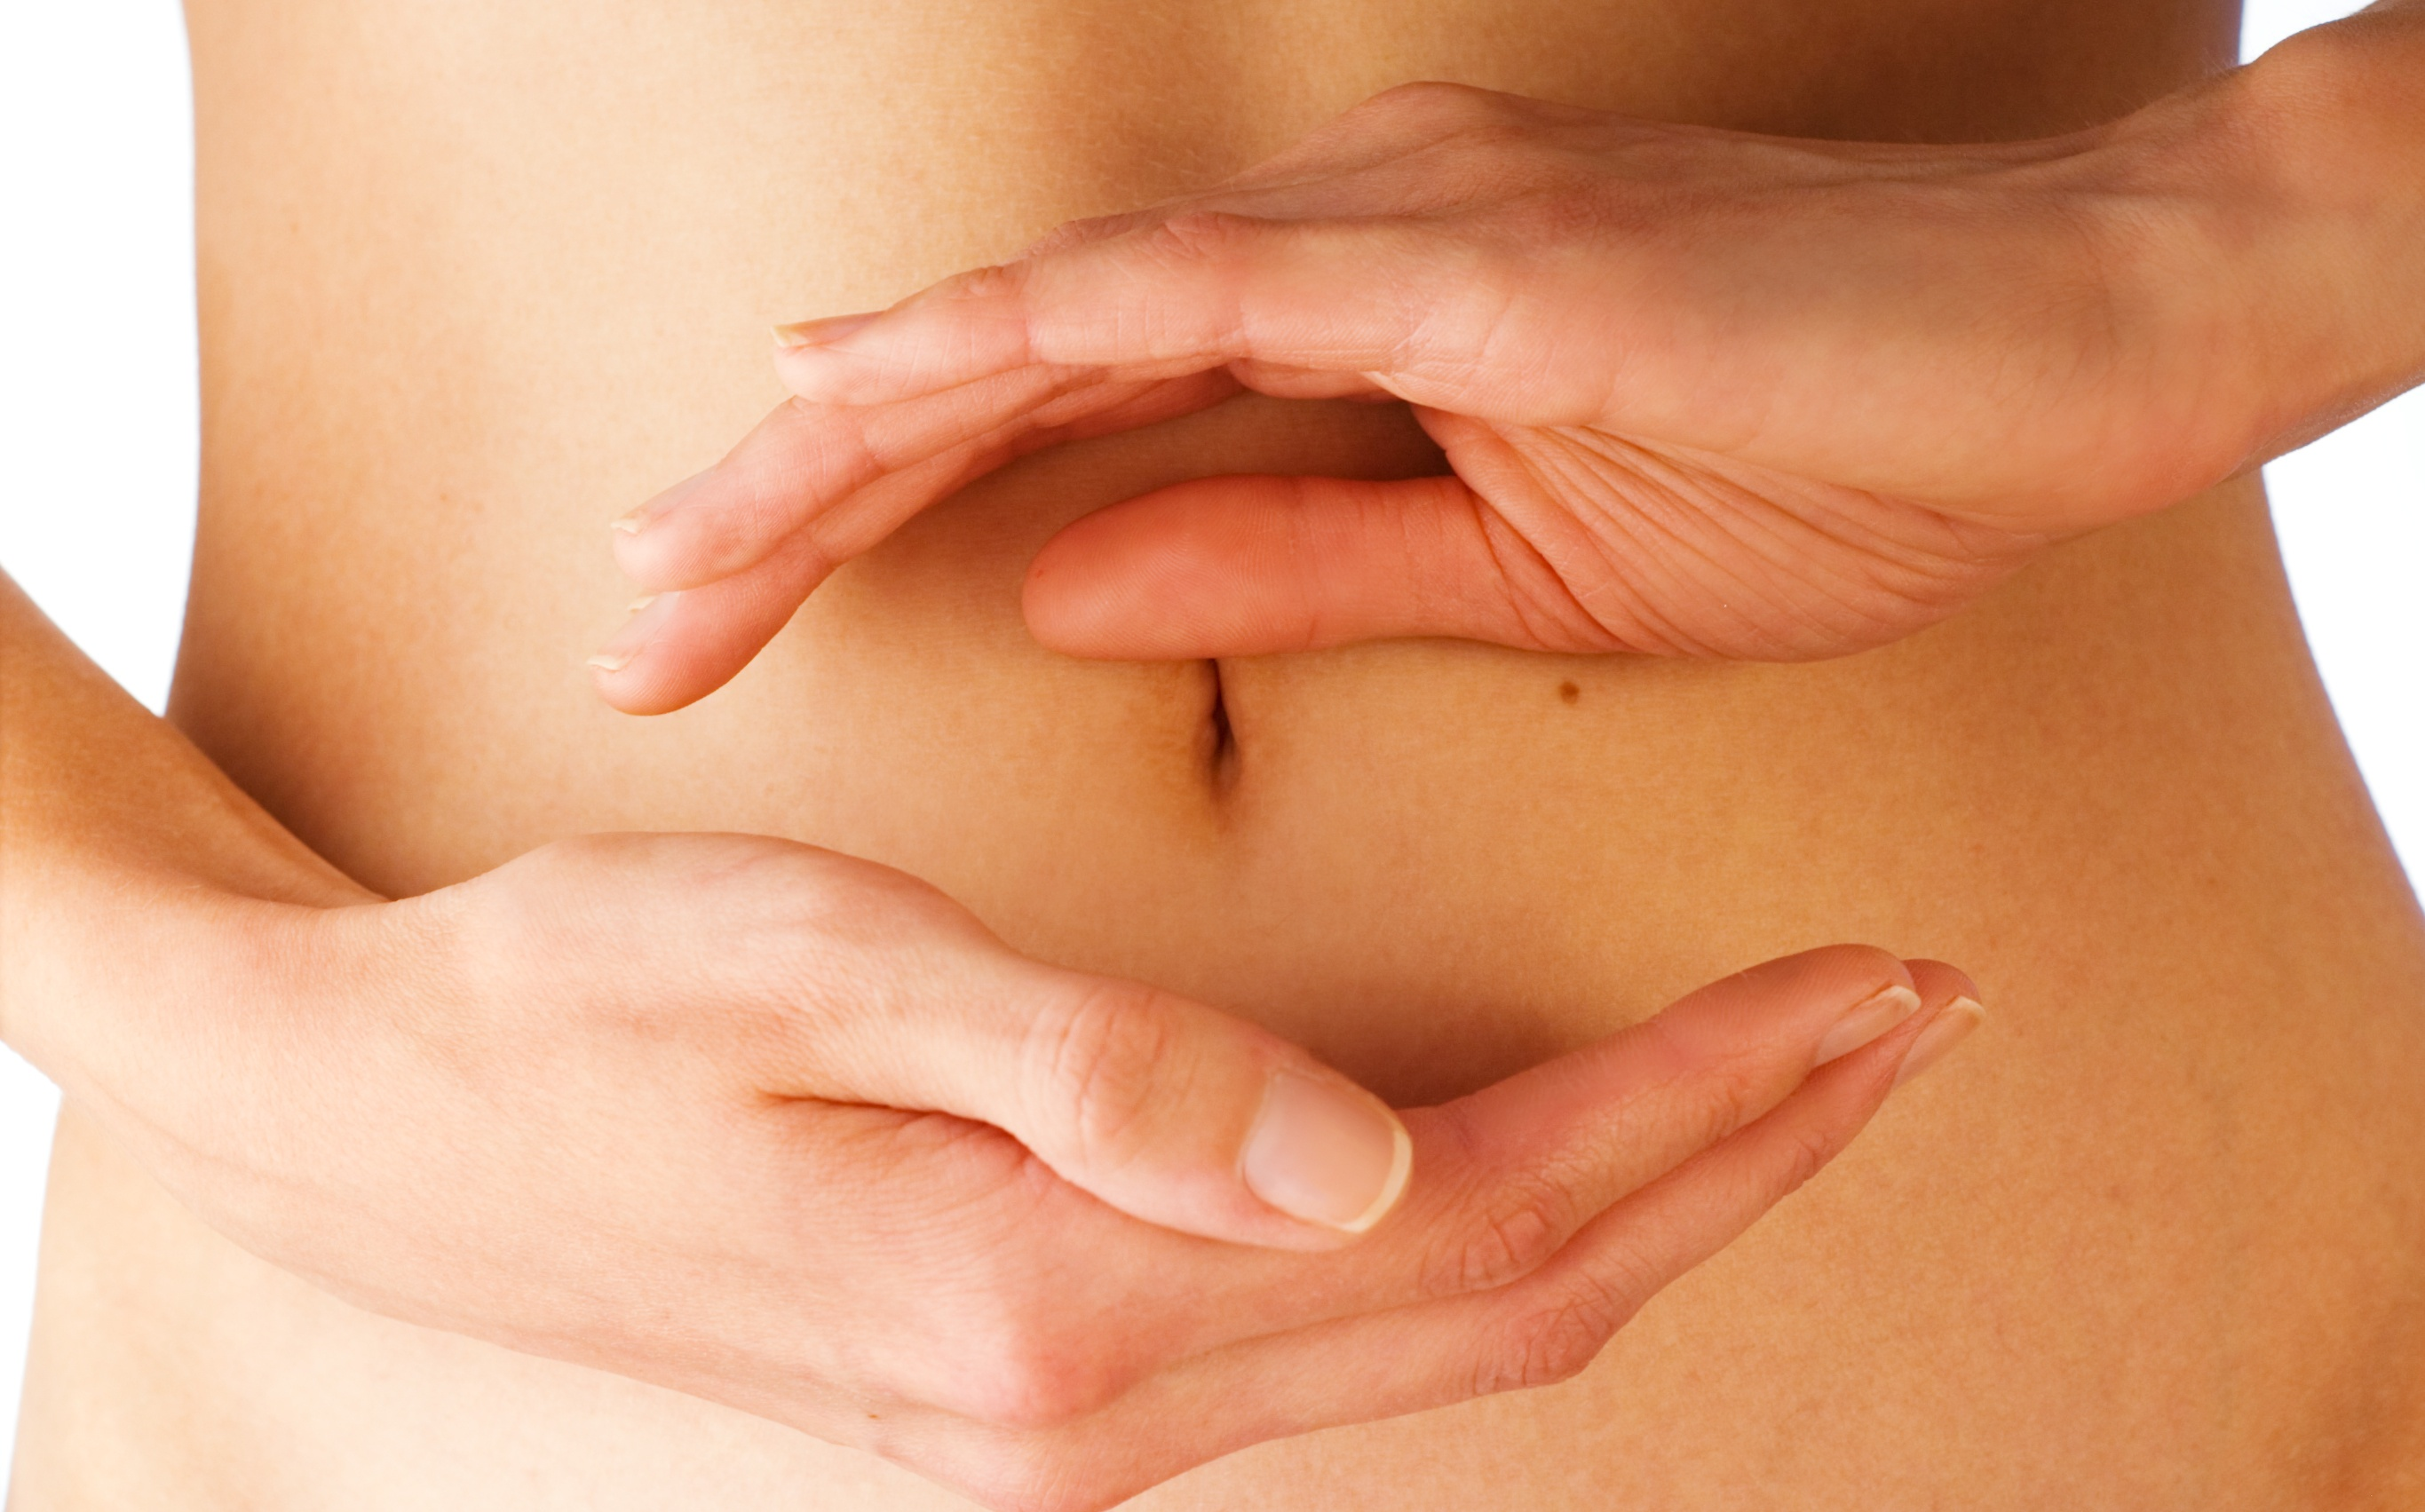 women holding her hands in circle shape in front of her stomach